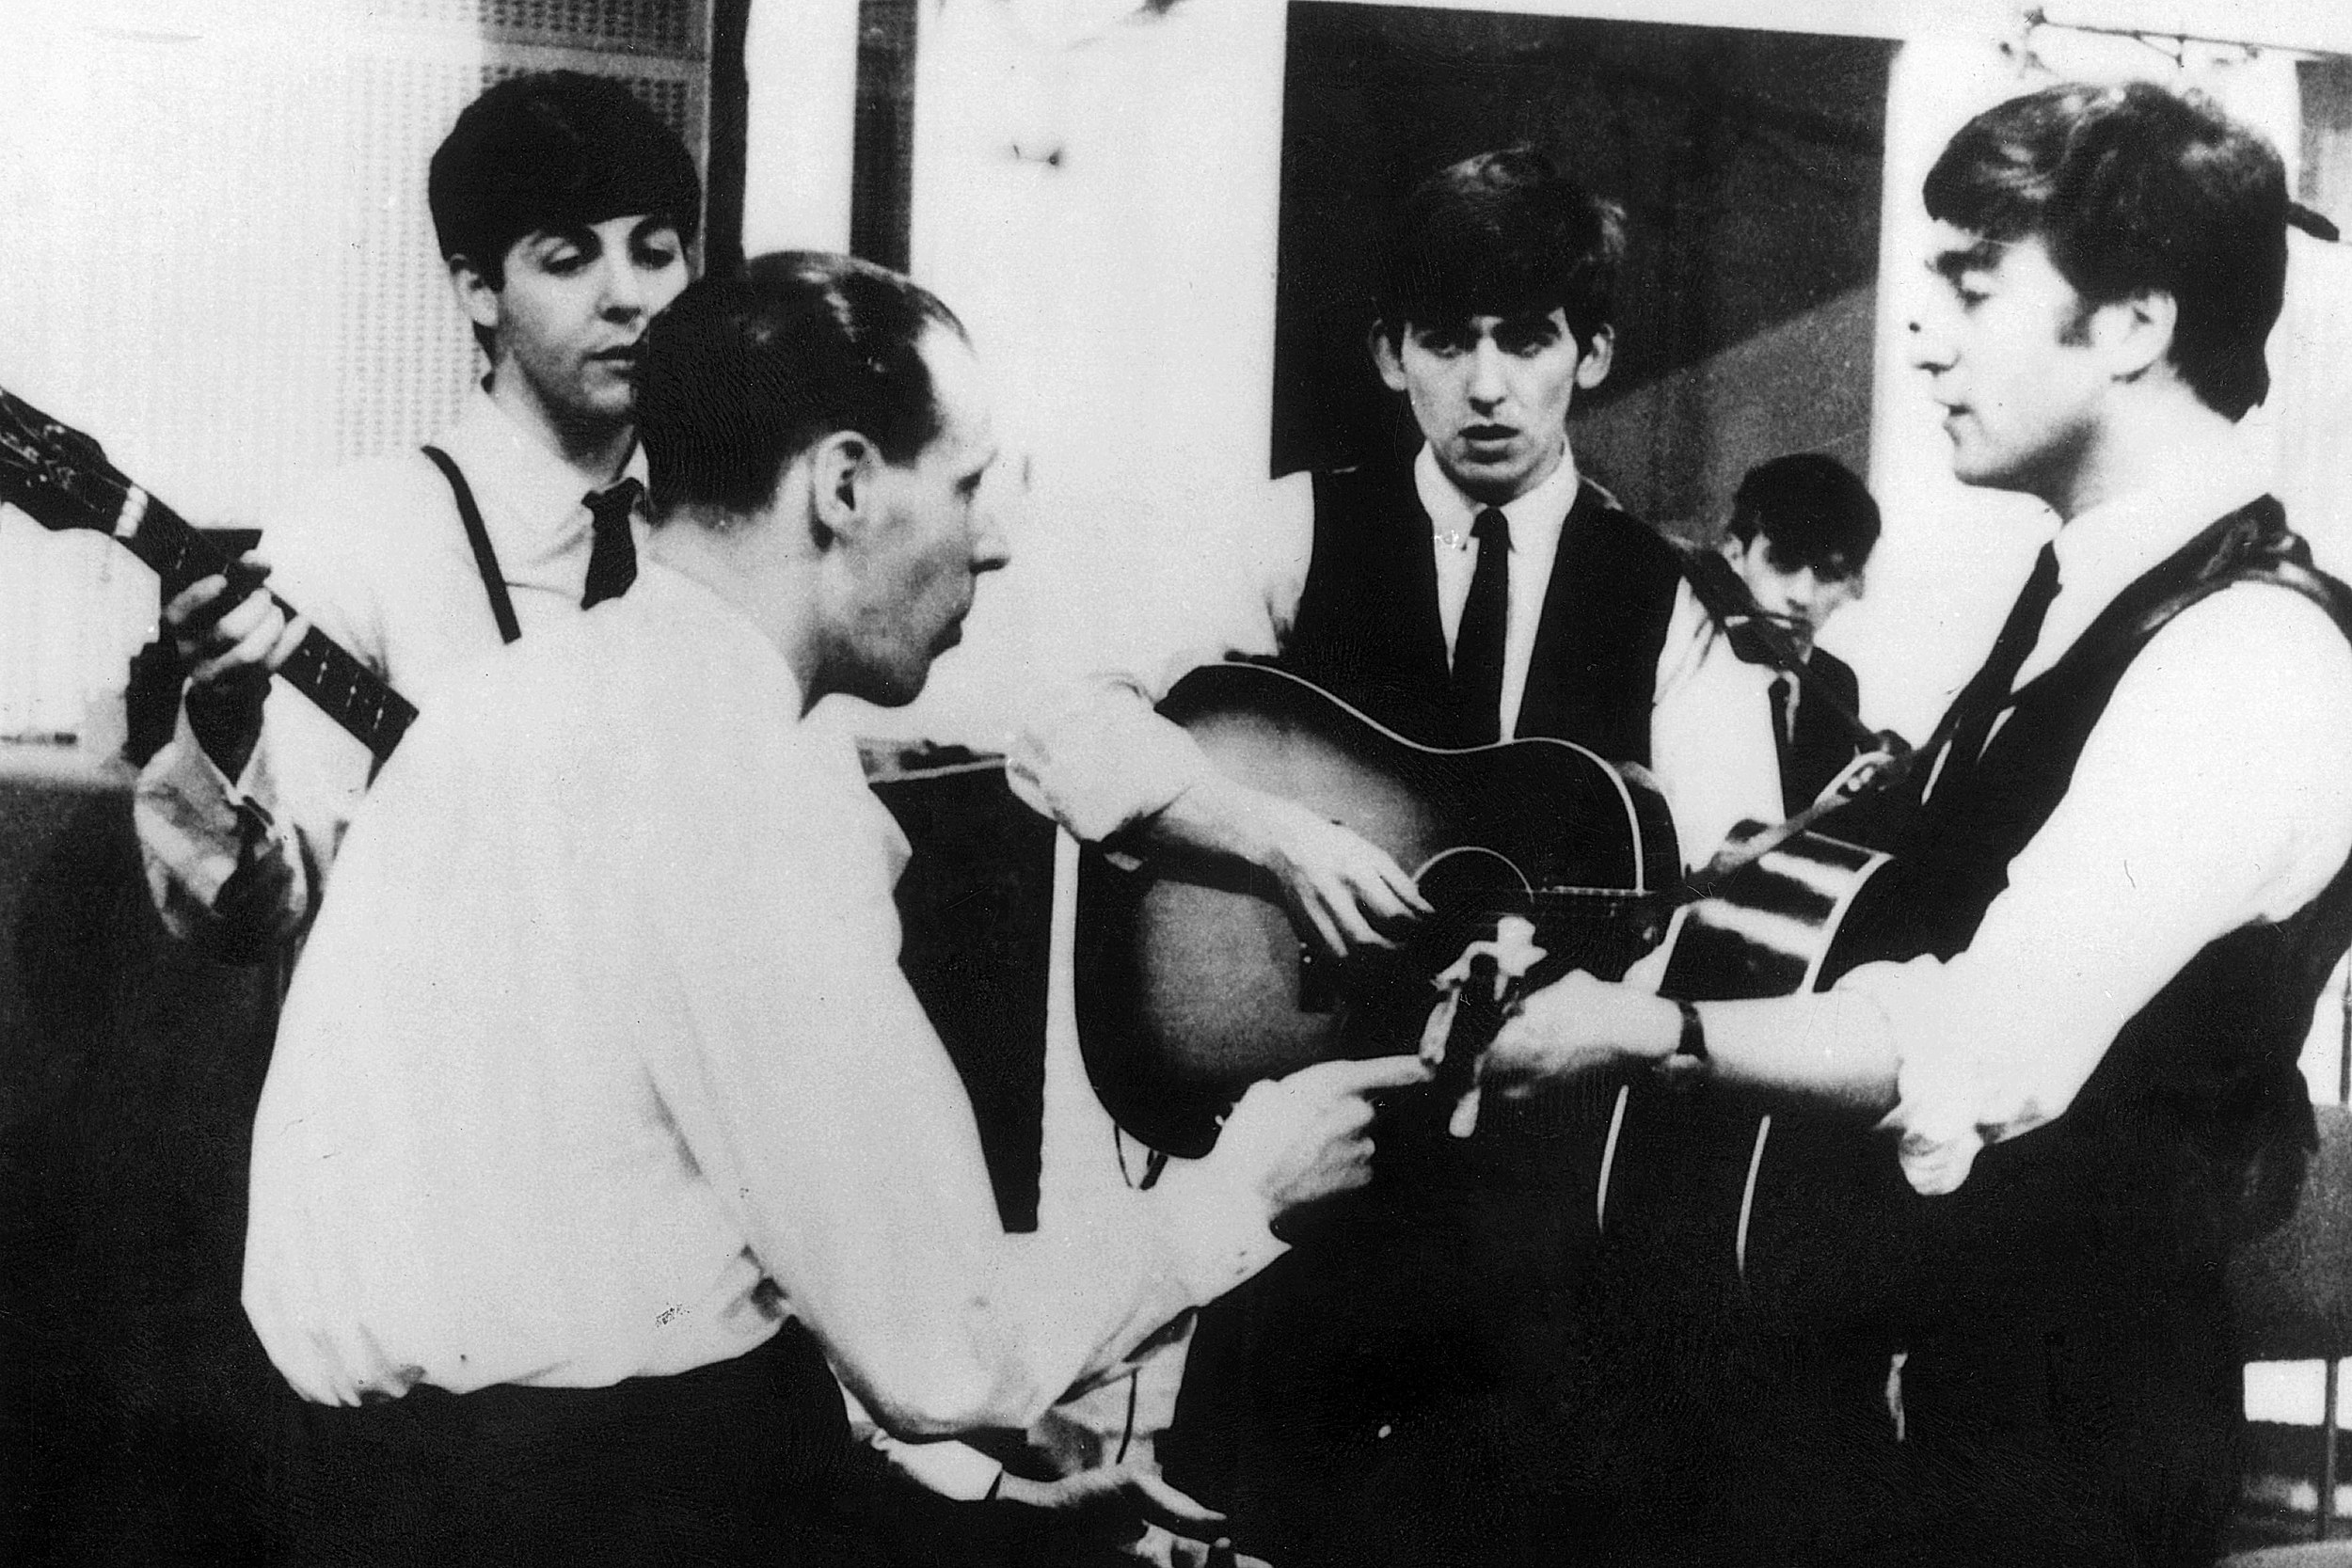 Book Explores Beatles' Tensions Over 'Hey Jude'